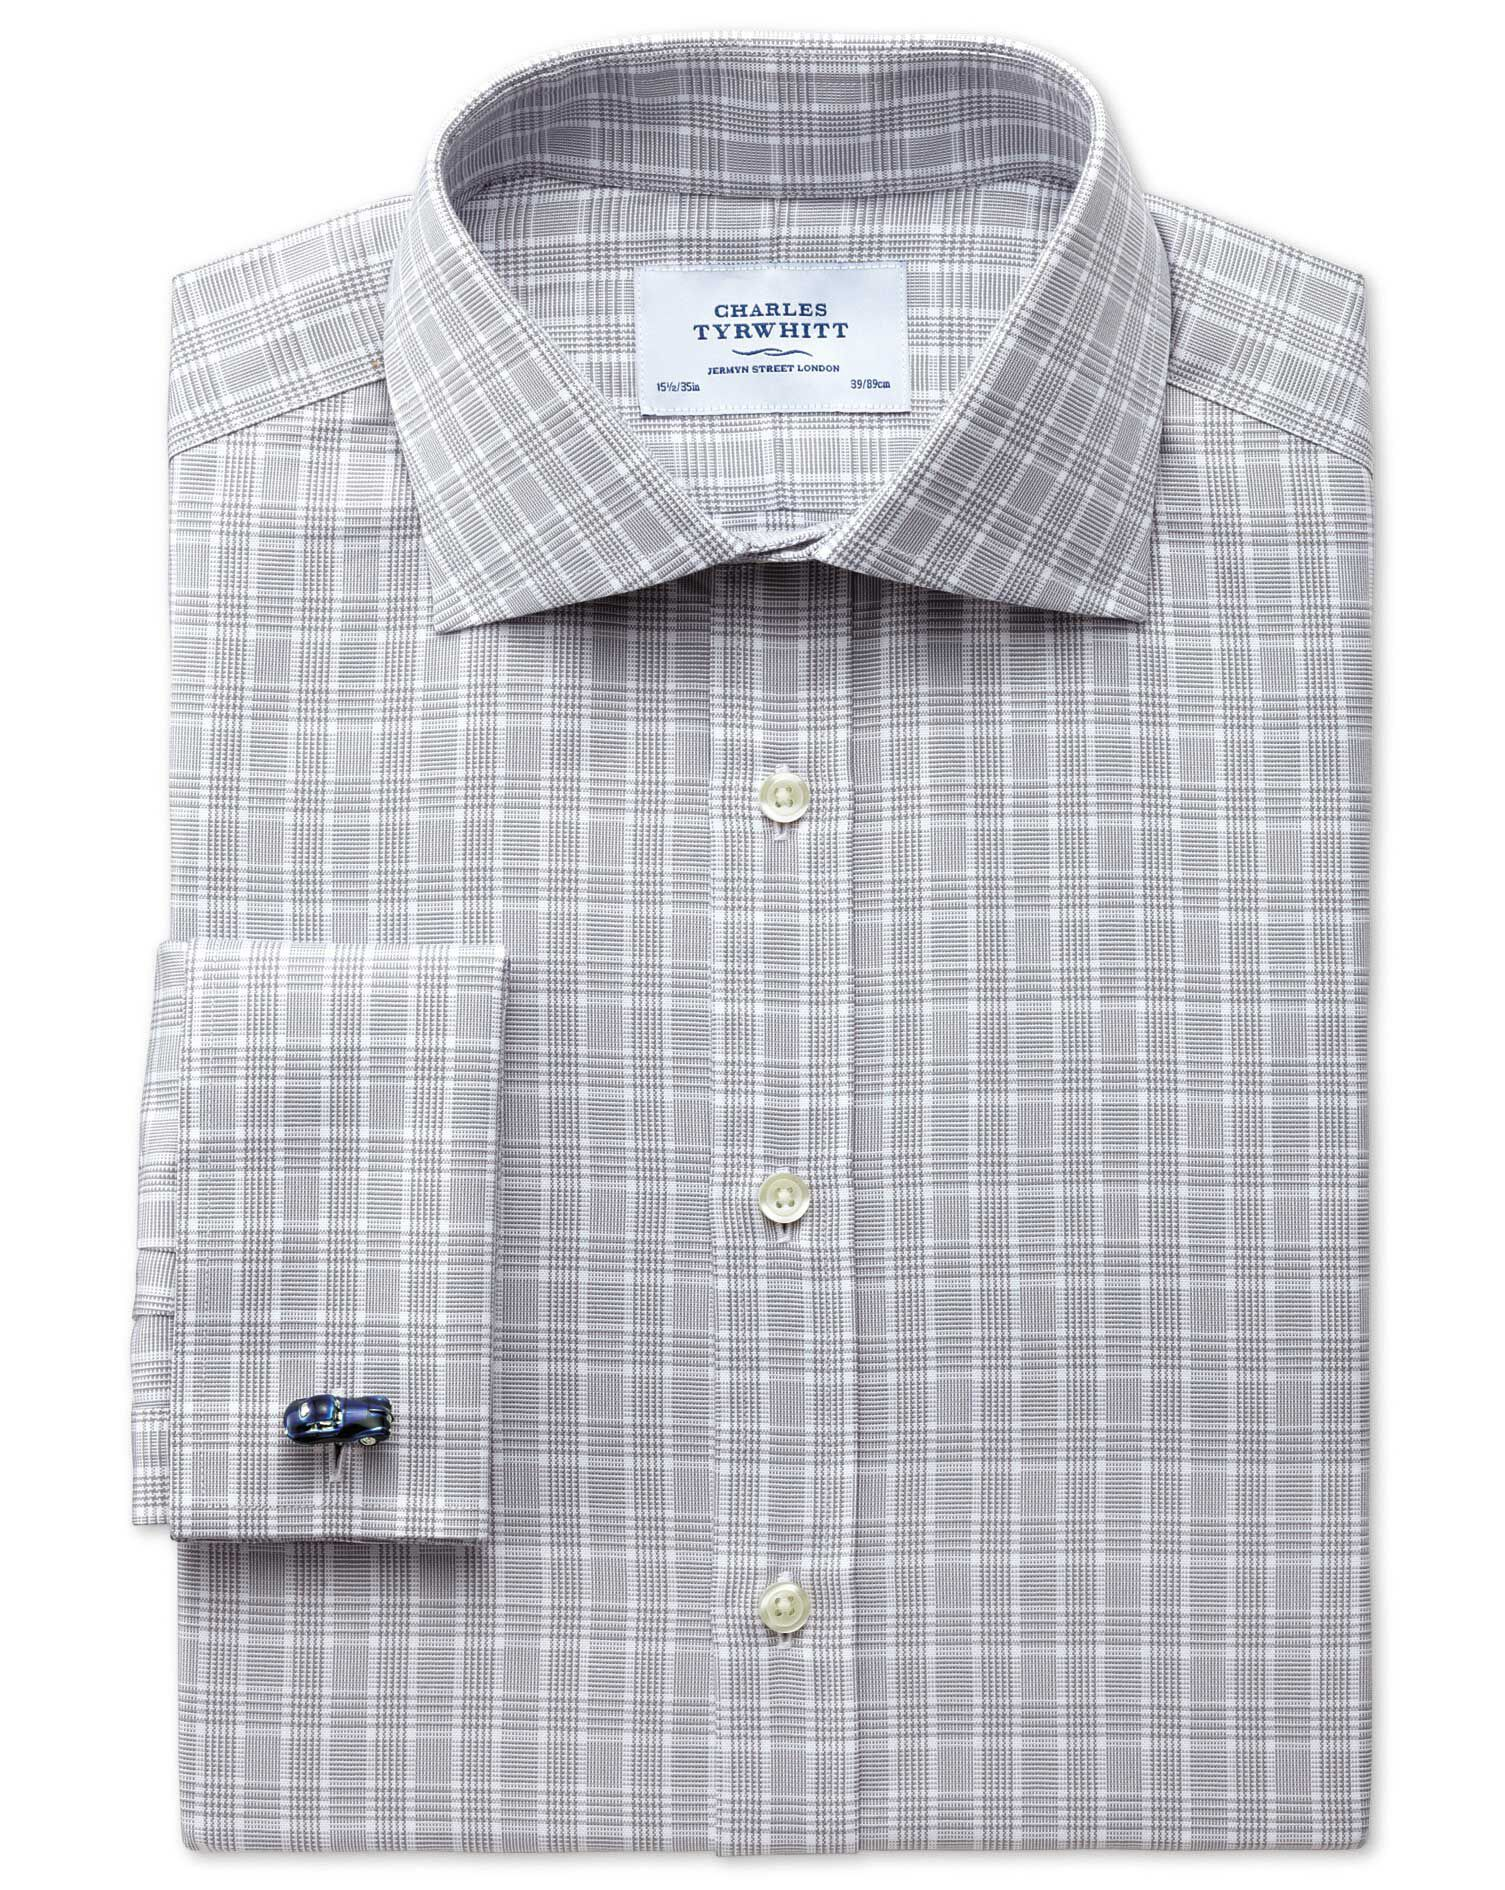 Classic Fit Prince Of Wales Silver Cotton Formal Shirt Single Cuff Size 16/38 by Charles Tyrwhitt